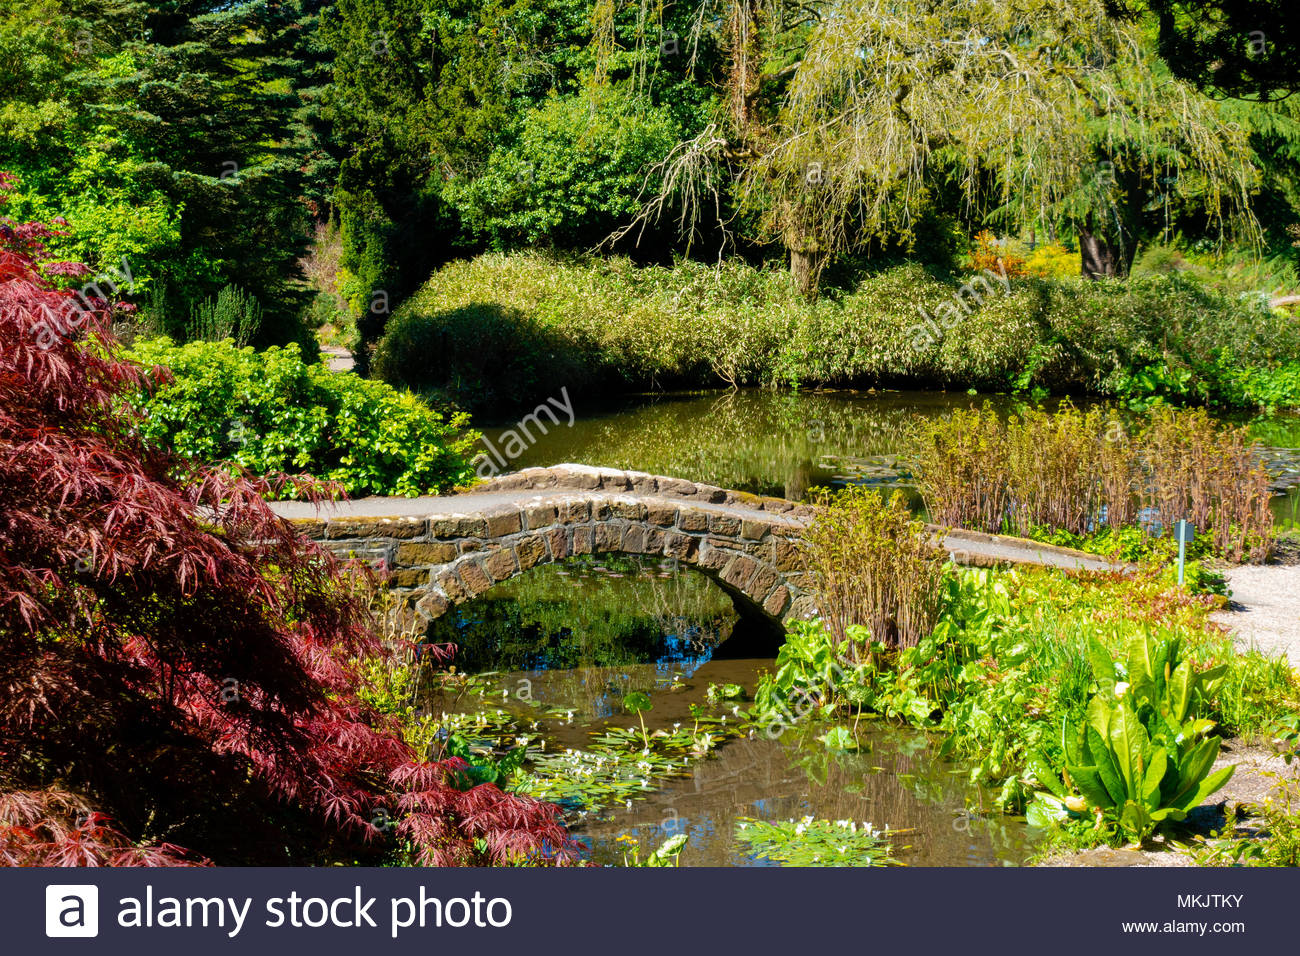 Landscapes & Scenery at The University of Liverpool's Ness Botanical  Gardens, Ness Gardens, Ness, Wirral, Merseyside England UK Credit: Christopher Canty Photography/Alamy Live News Stock Photo